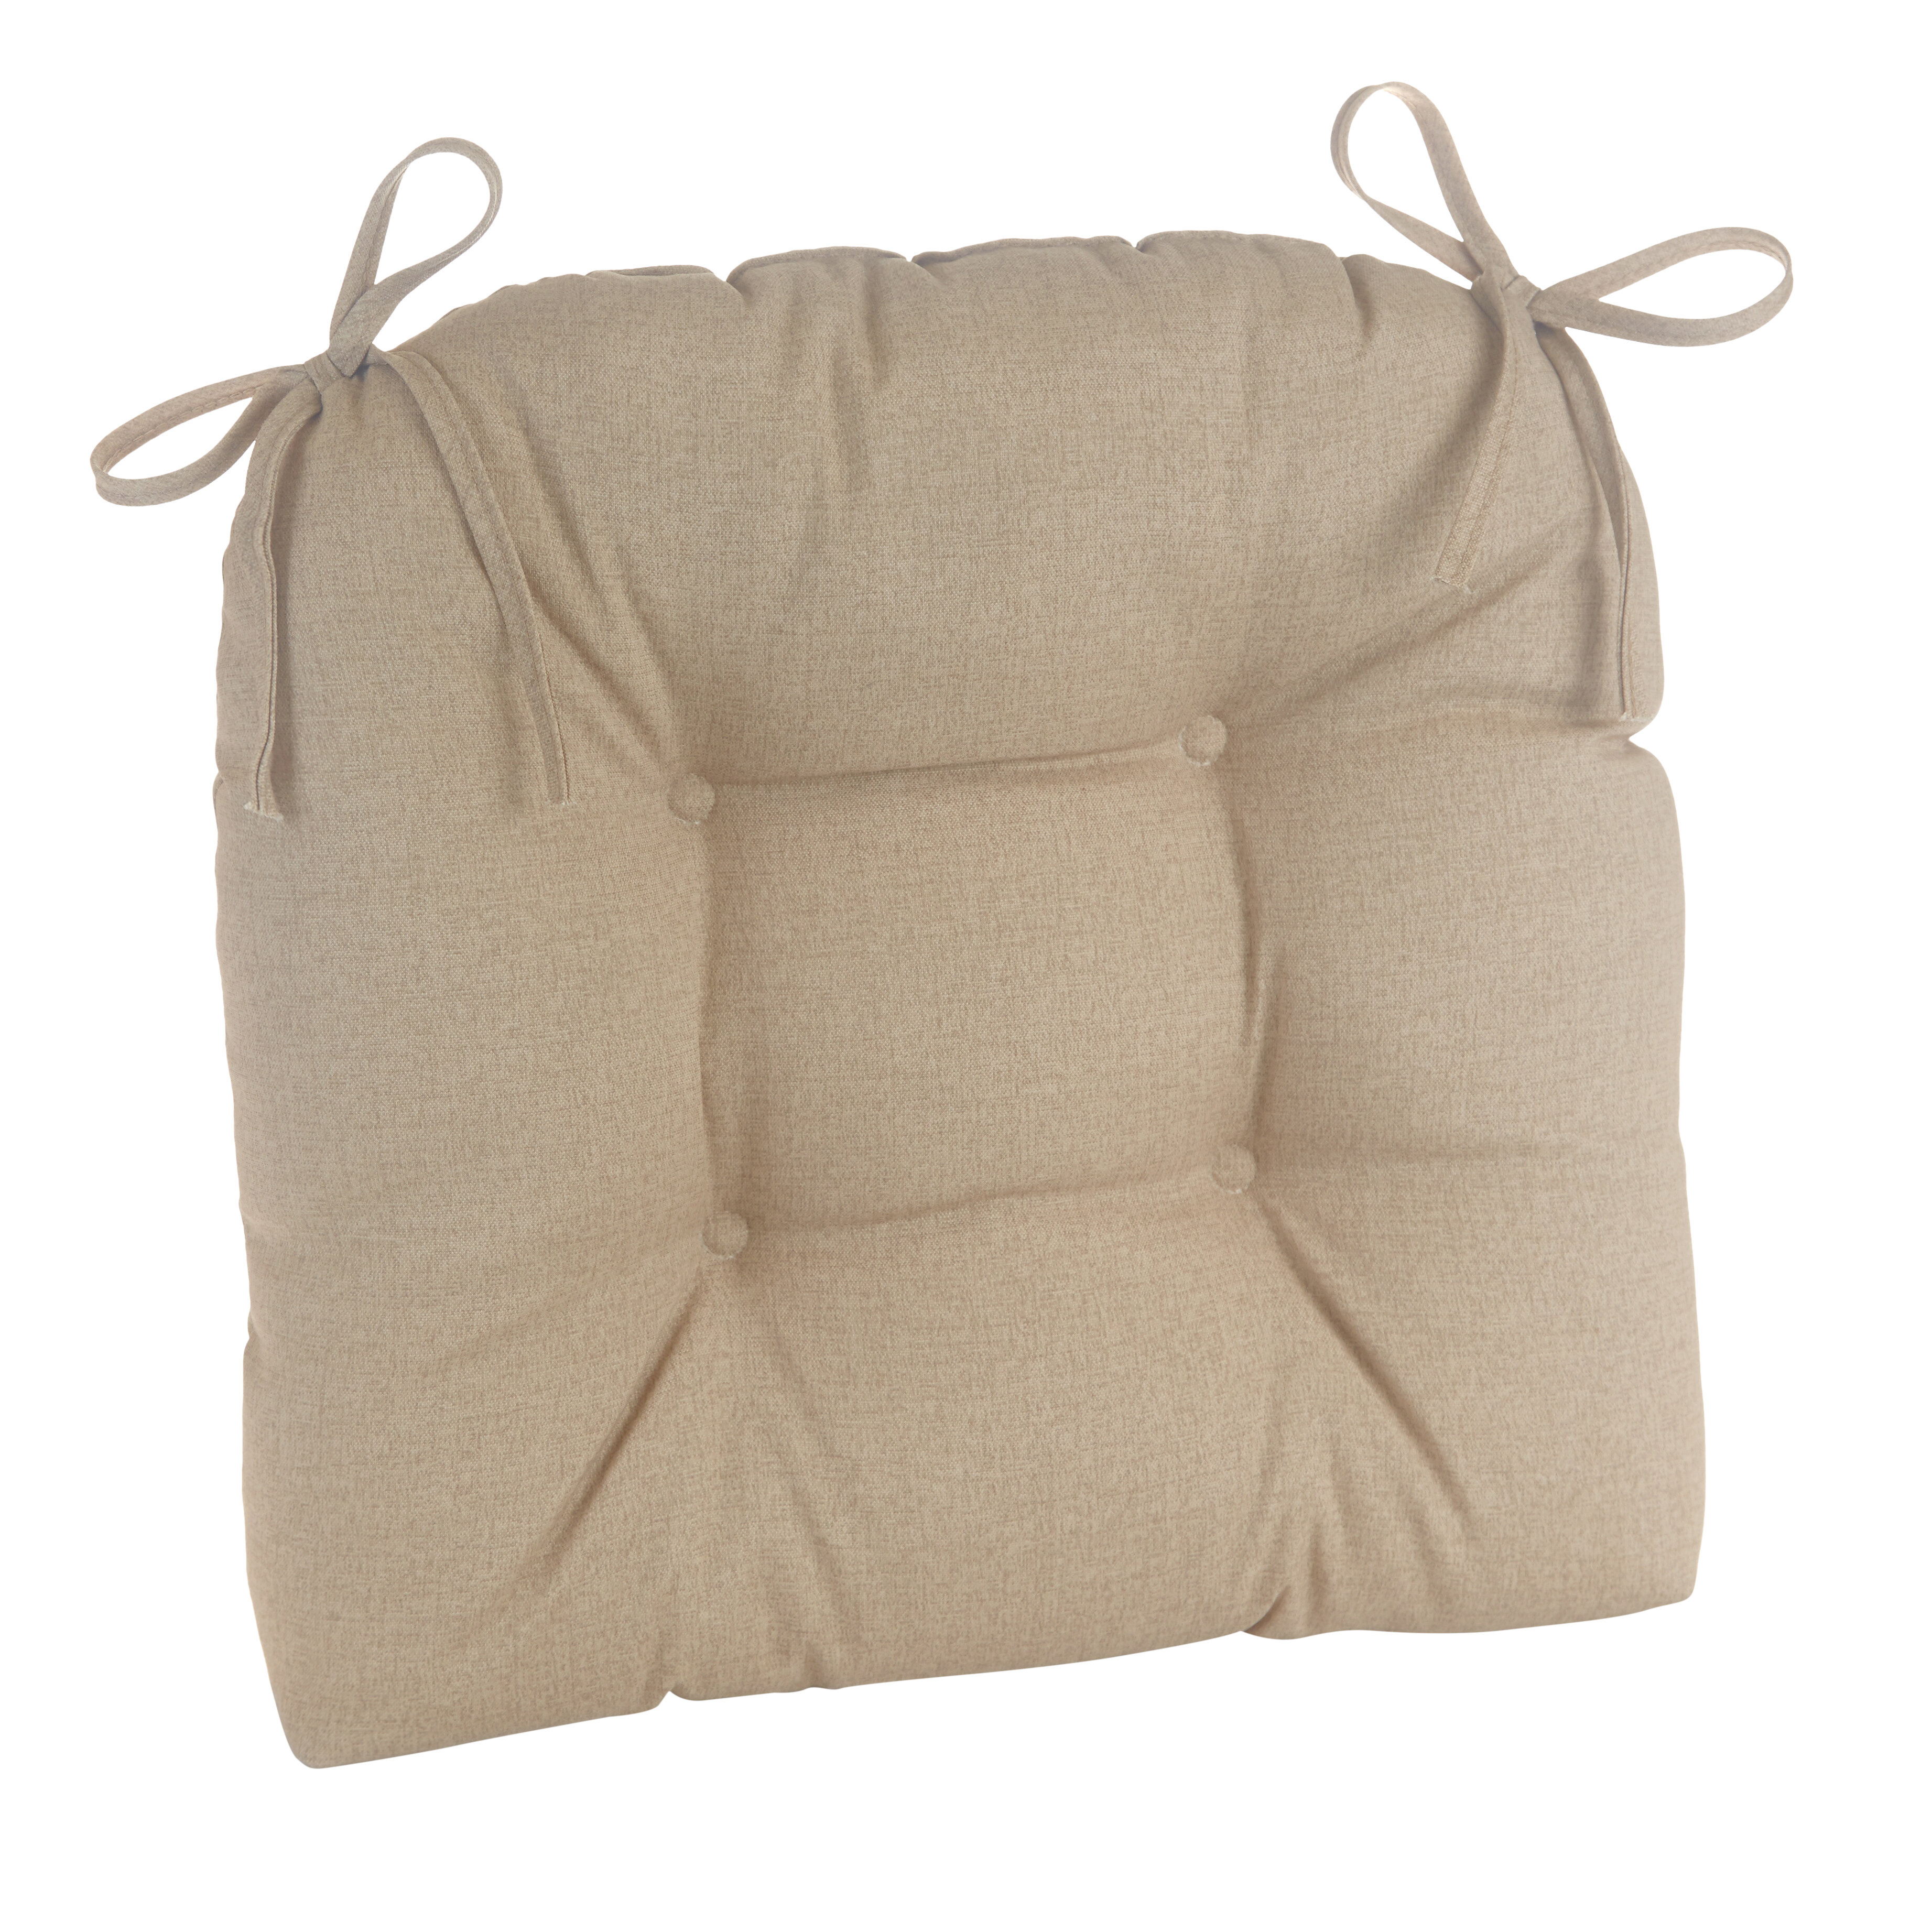 Extra Large Lounge Chair Cushion